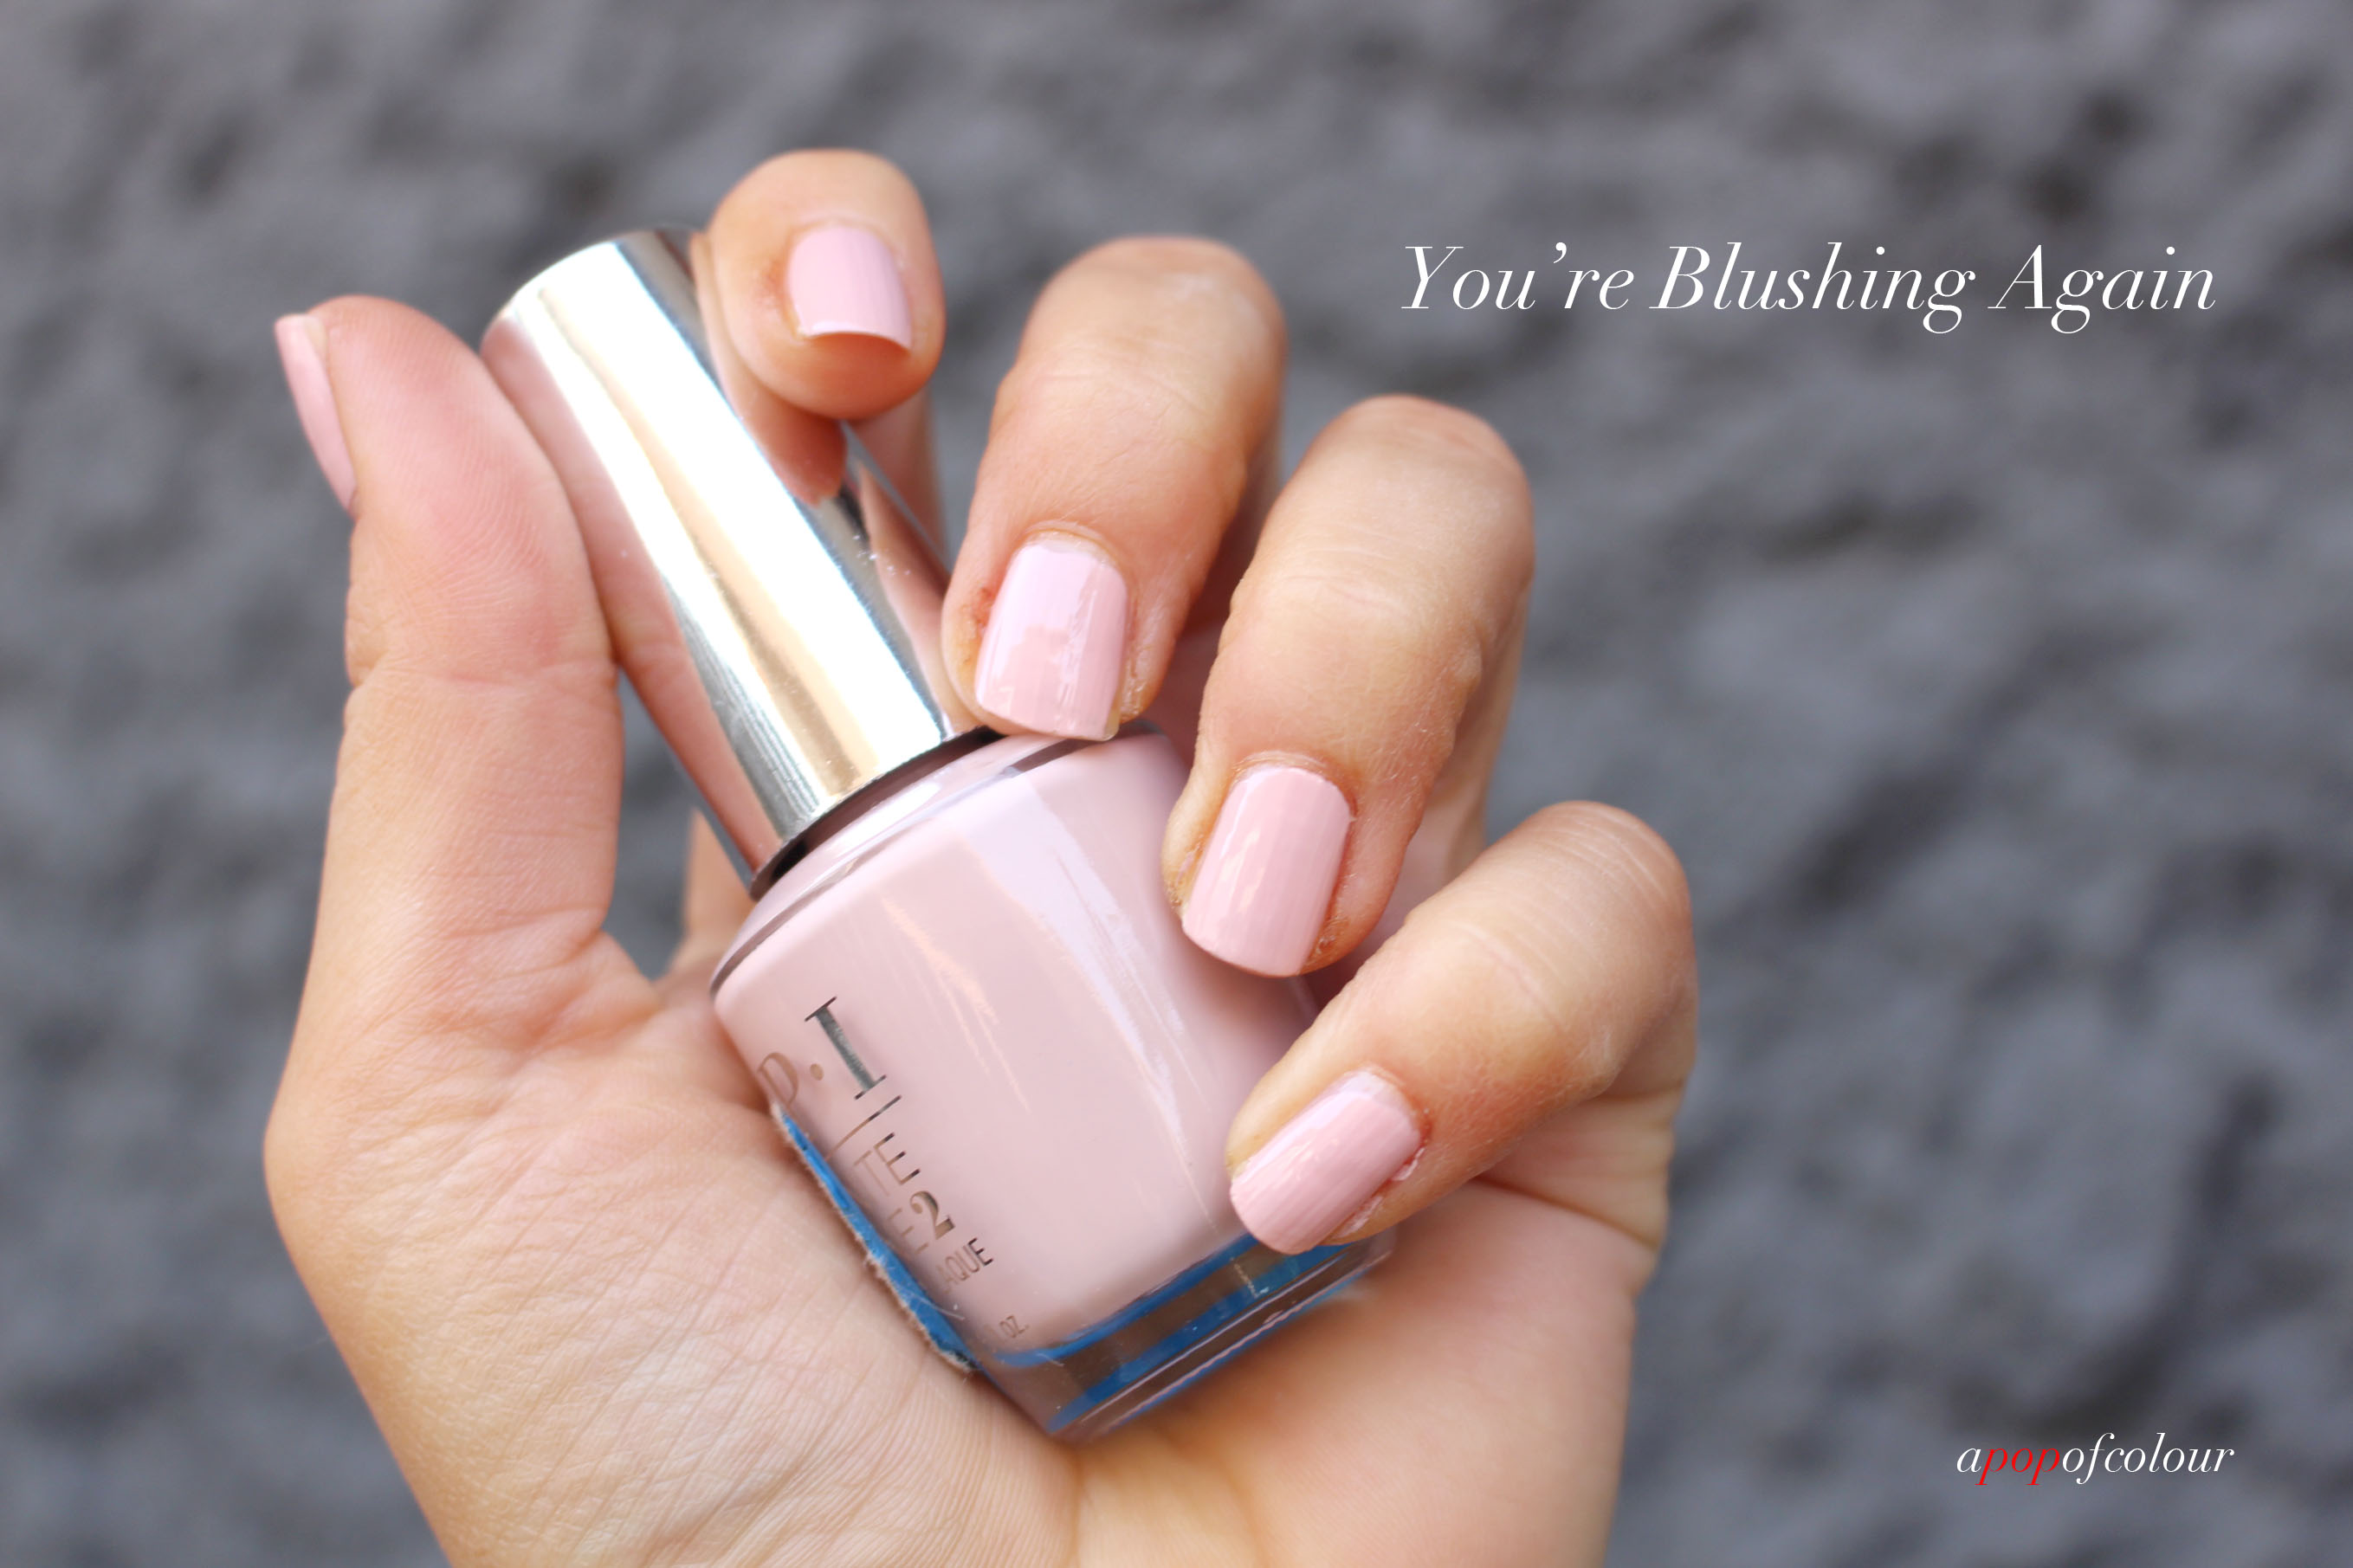 A sheer wash of colour: OPI Infinite Shine Soft Shades - A Pop of Colour